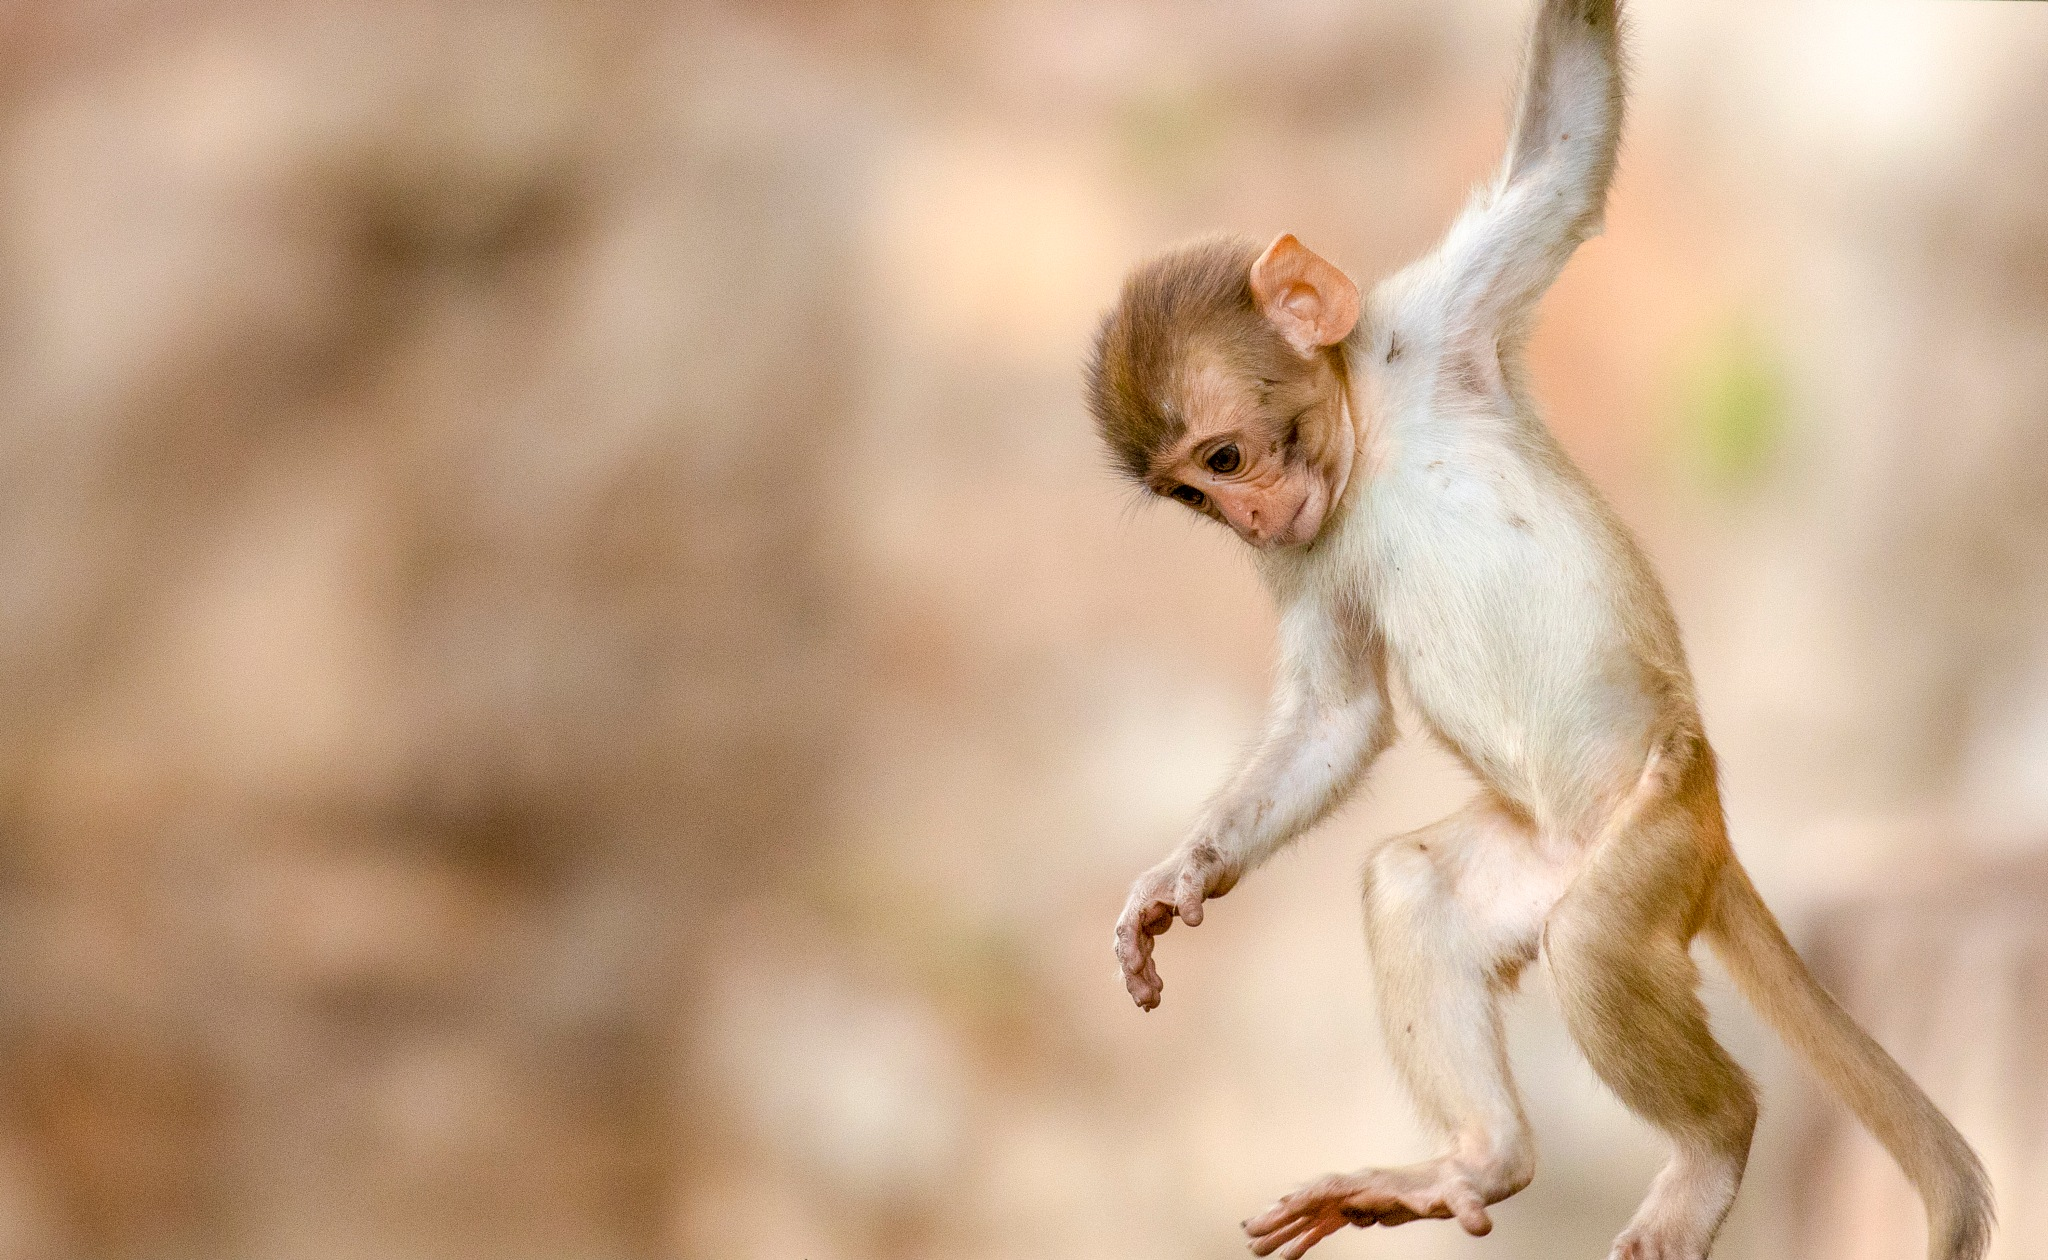 Let me show some moves by Ankit Shukla